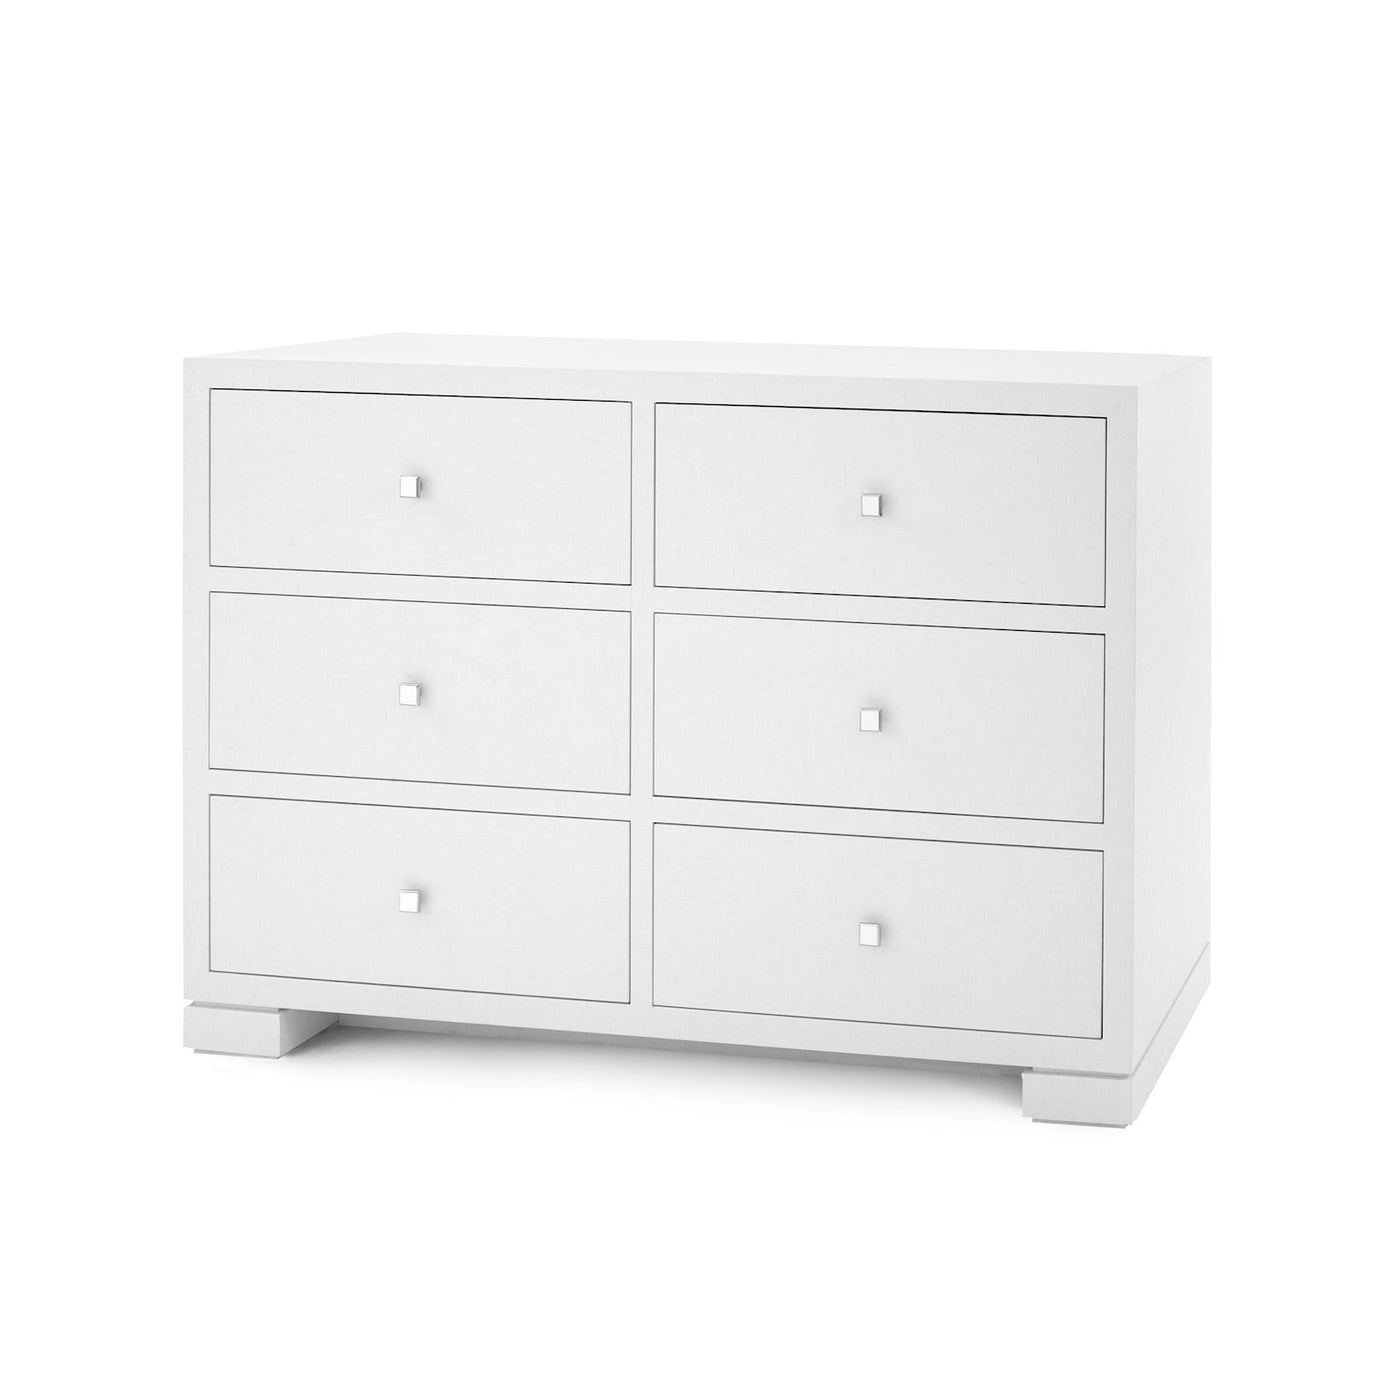 Bungalow 5 Frances Extra Large 6 Drawer Chest White FRA-250 Angle